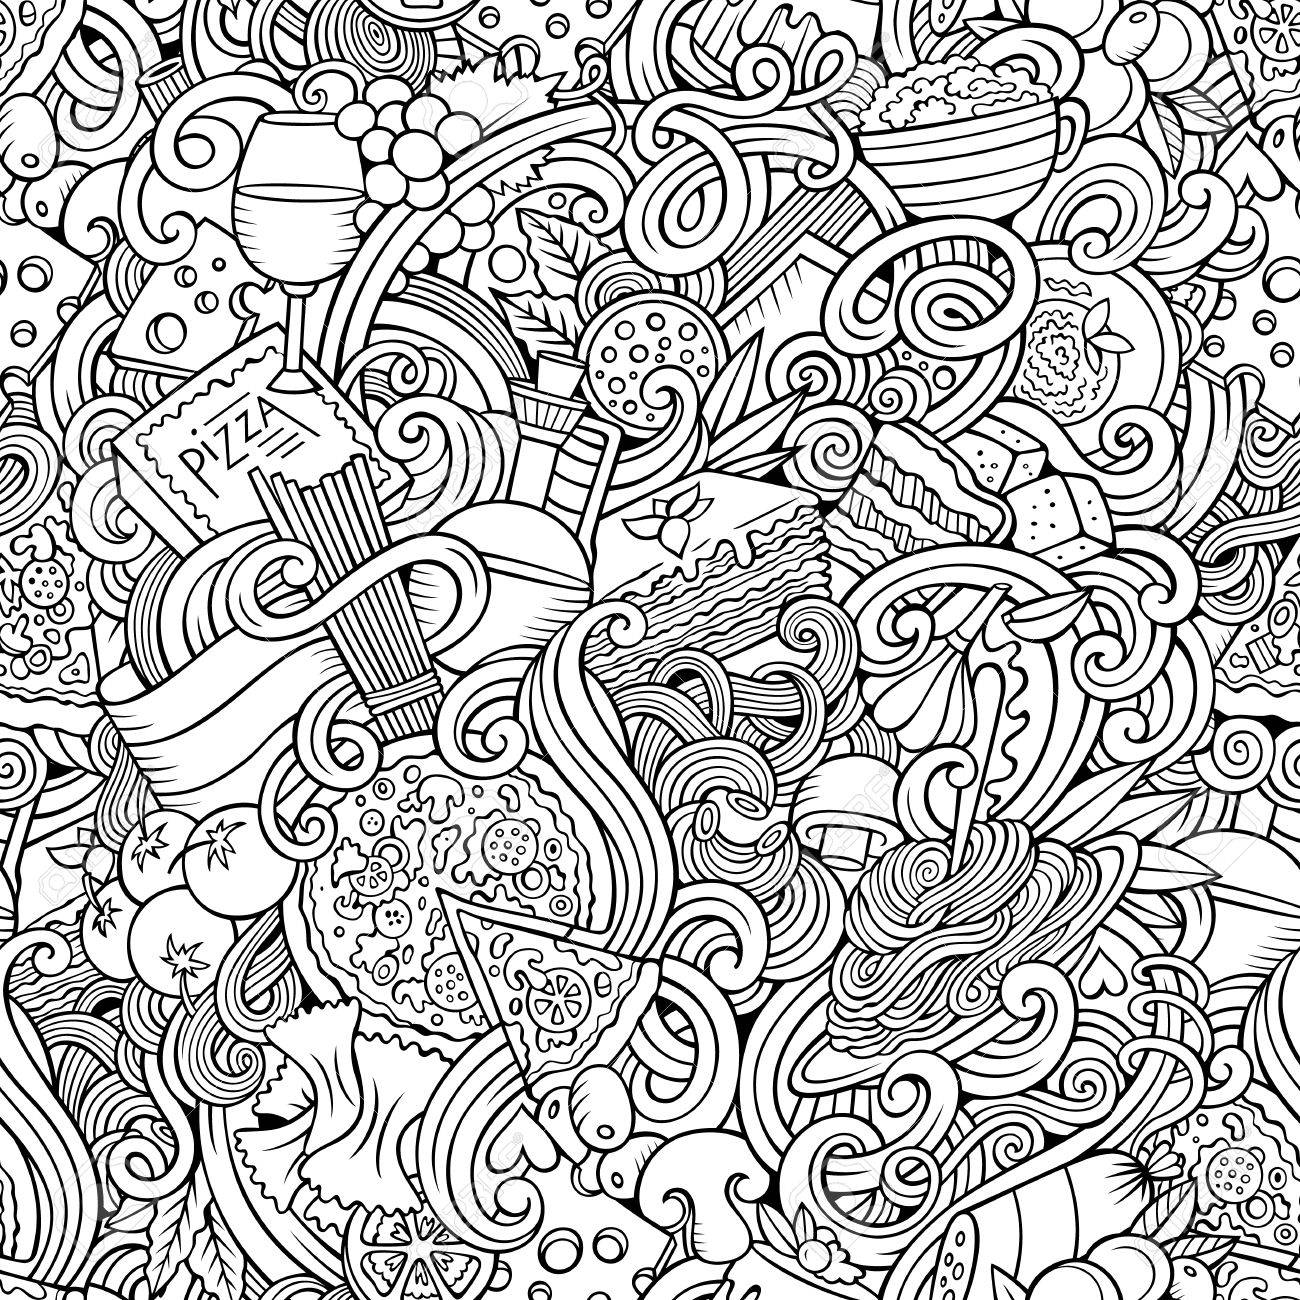 Cartoon hand-drawn doodles on the subject of Italian cuisine theme seamless pattern. Line art detailed, with lots of objects vector background - 54364894